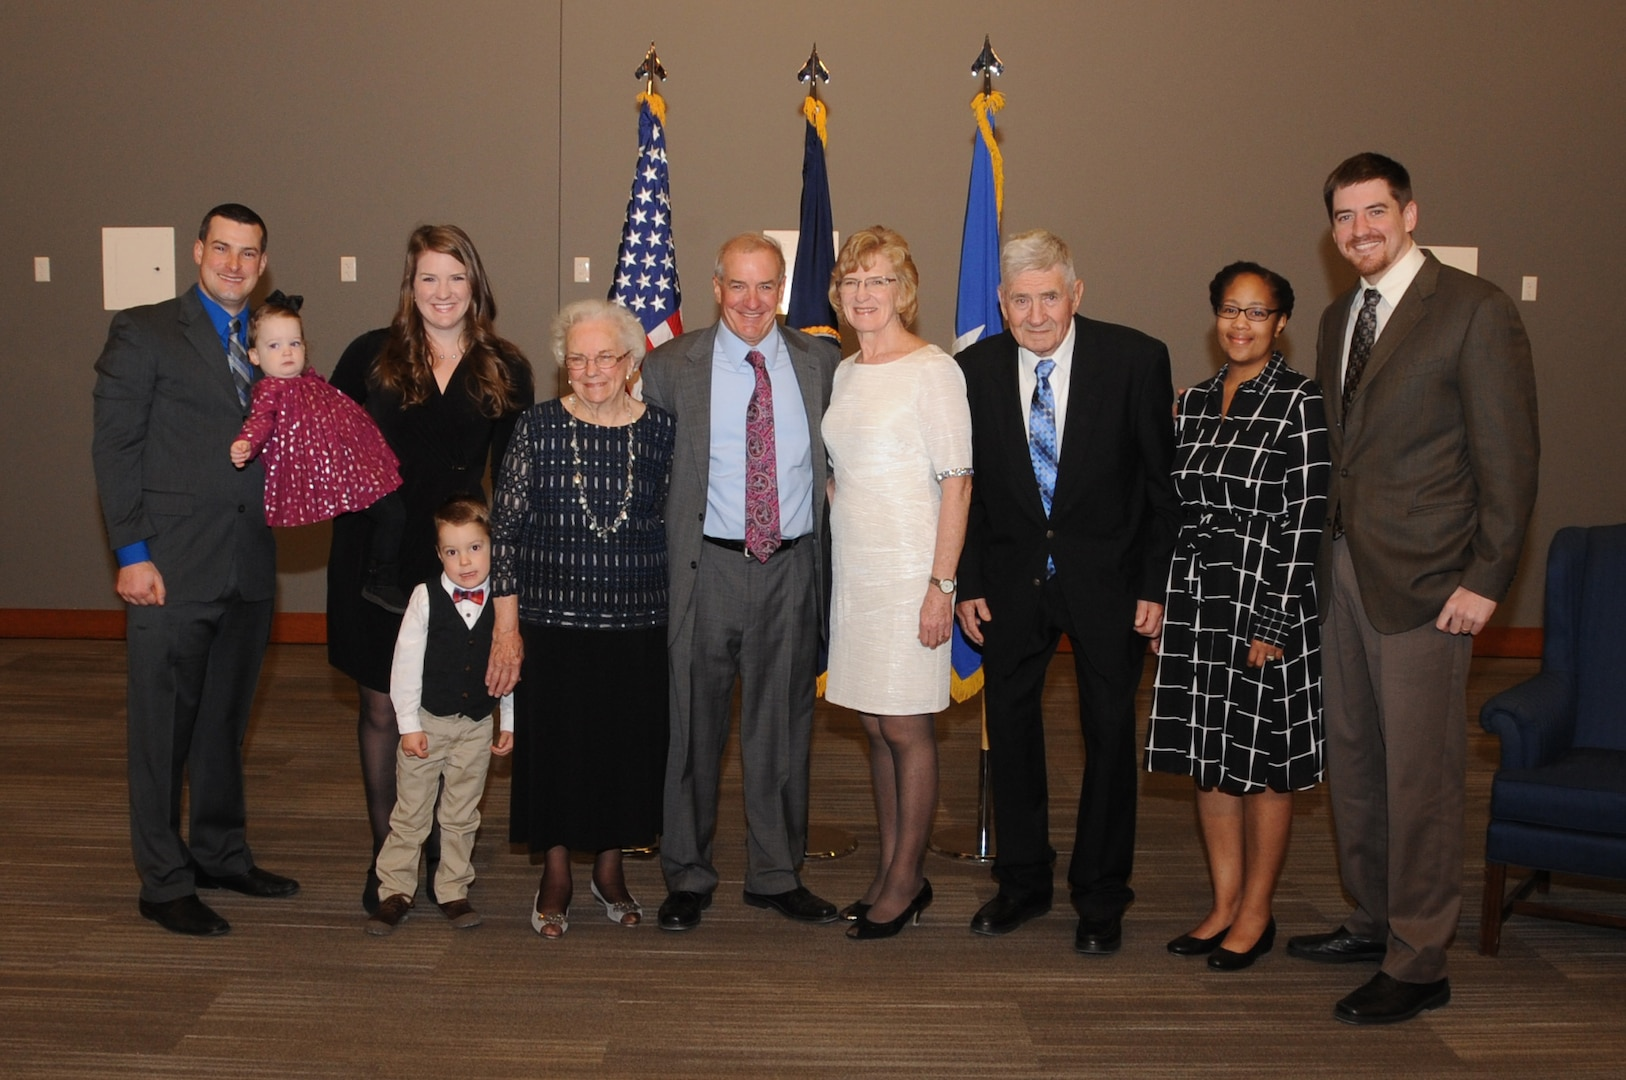 Kenneth Callicutt (center), U.S. Strategic Command (USSTRATCOM) director of capability and resource integration, takes a photo with his family before his retirement ceremony at Offutt Air Force Base, Neb., Dec. 1, 2017. During his 12 years with USSTRATCOM, Callicutt led the team responsible for conducting force management and analysis to include integrating, and advocating future concepts, weapons system development, support for emerging technologies, and command and control architecture. One of nine Department of Defense unified combatant commands, USSTRATCOM has global responsibilities assigned through the Unified Command Plan that include strategic deterrence, nuclear operations, space operations, joint electromagnetic spectrum operations, global strike, missile defense, and analysis and targeting.